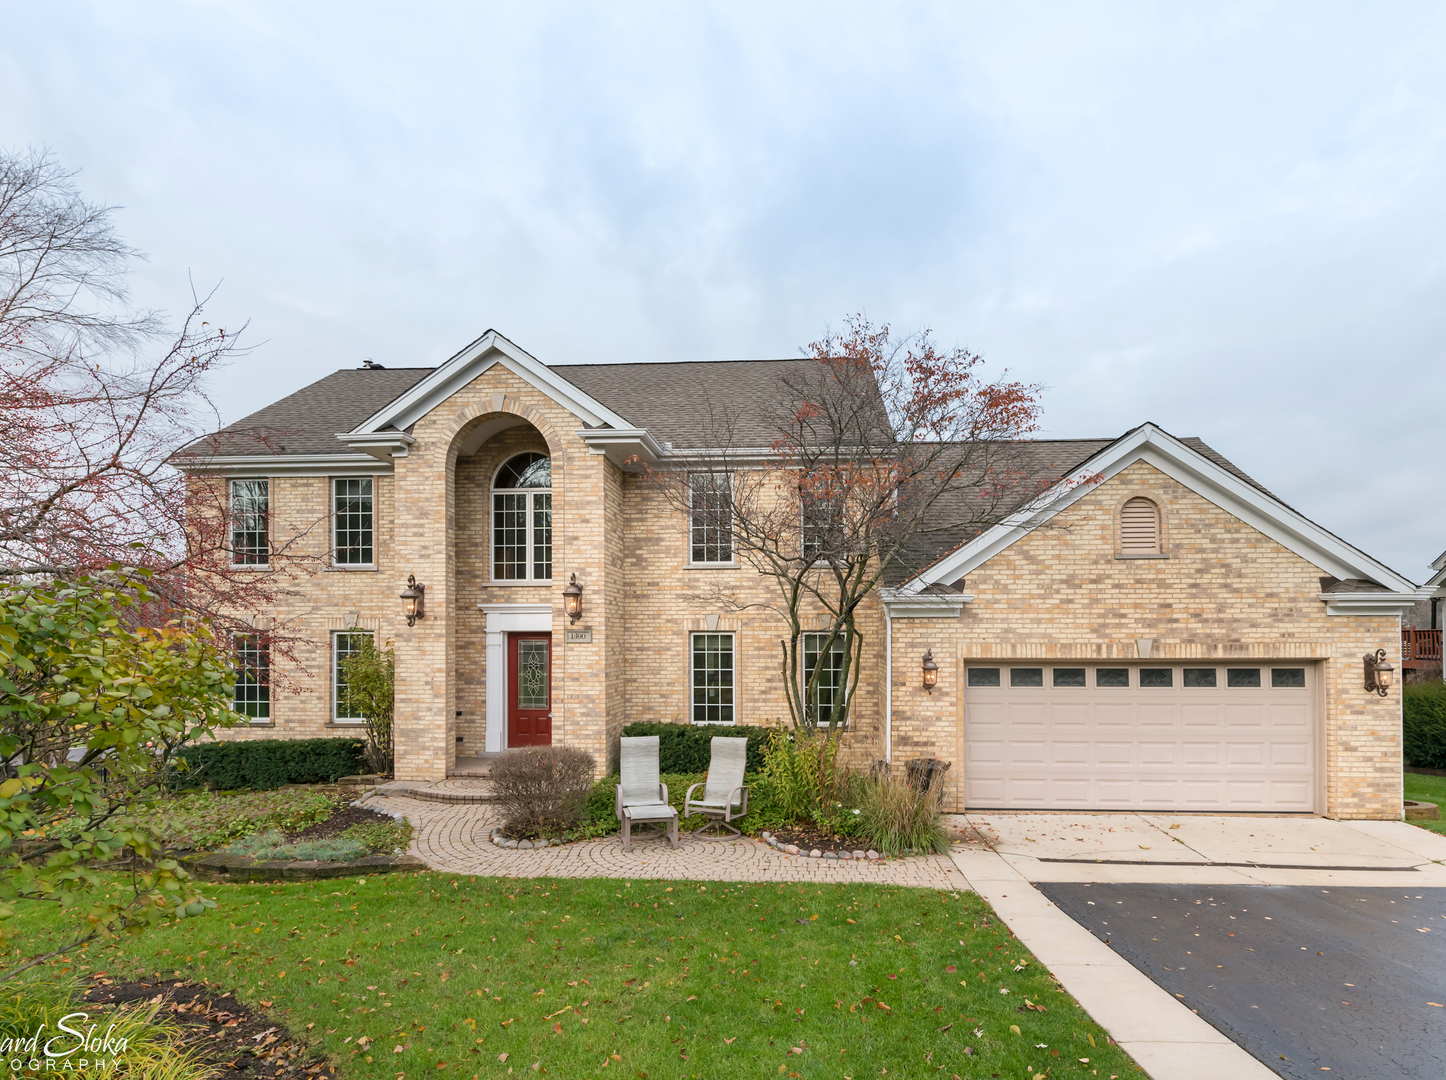 1390 Braewood Drive, Algonquin in Kane County, IL 60102 Home for Sale